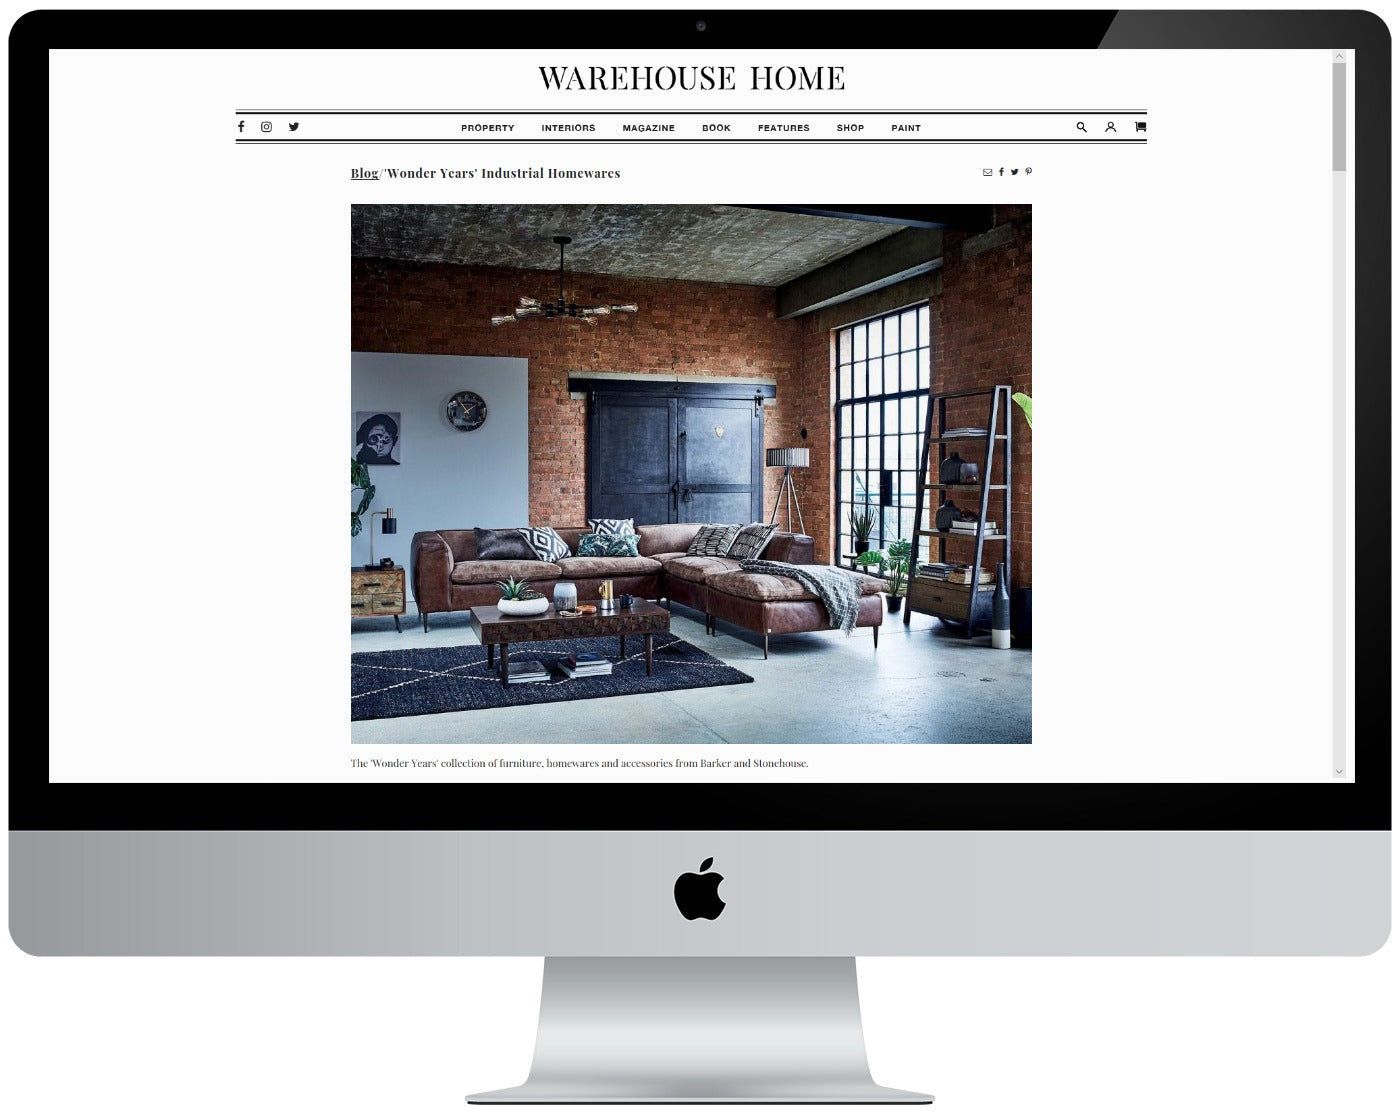 Warehouse home website screenshot